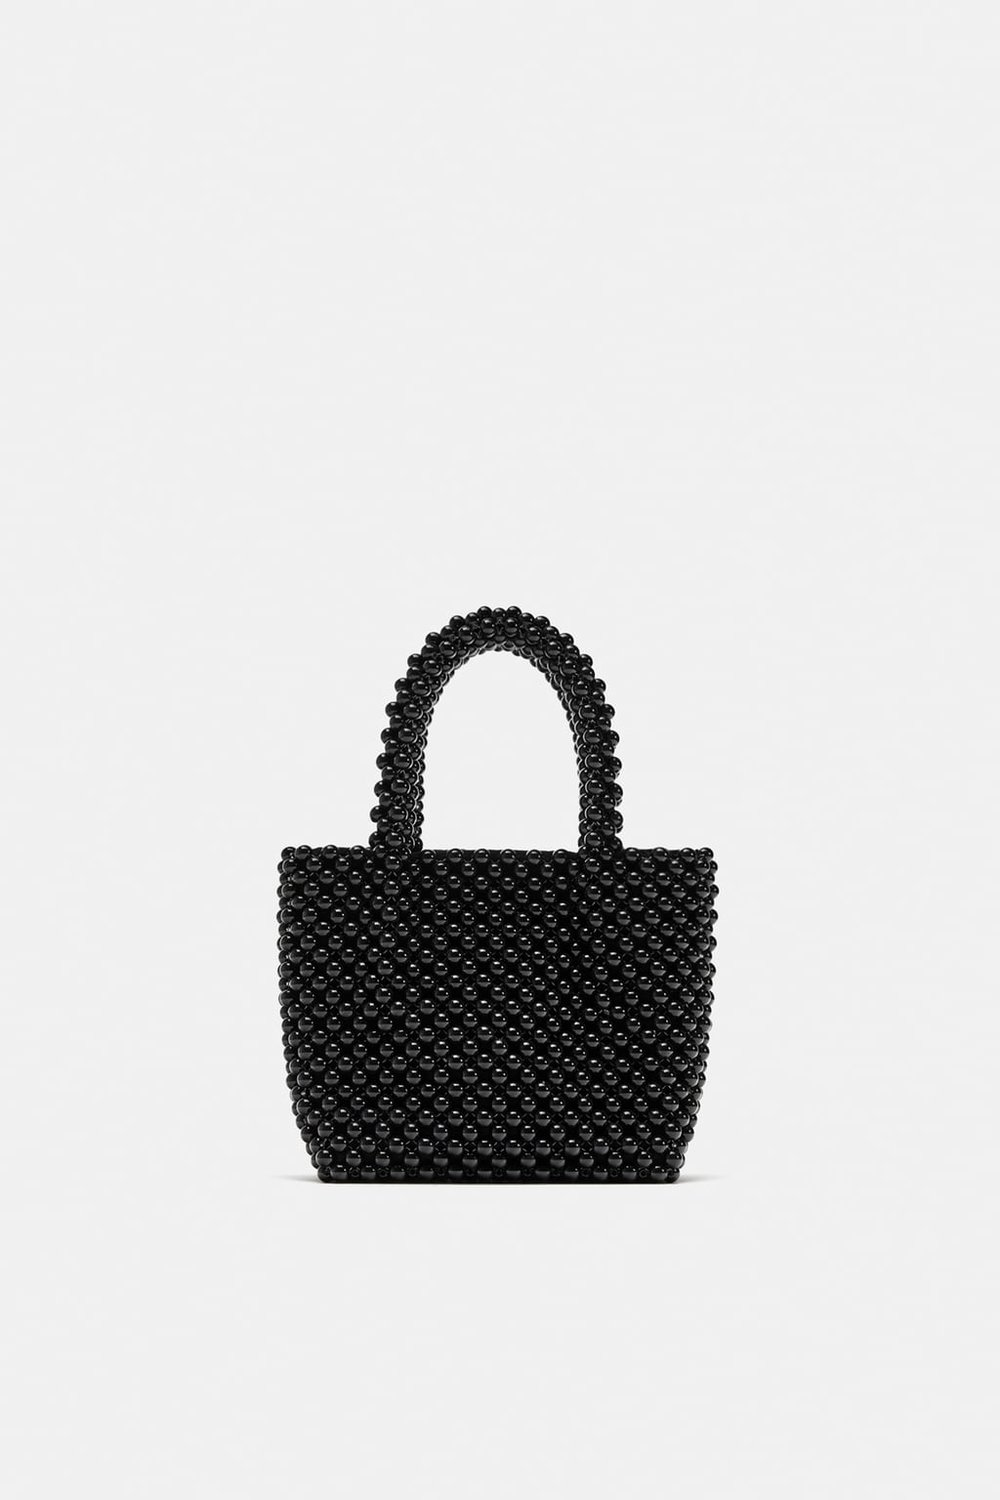 https://www.zara.com/ca/en/beaded-mini-shopper-p12422304.html?v1=6575207&v2=1074708